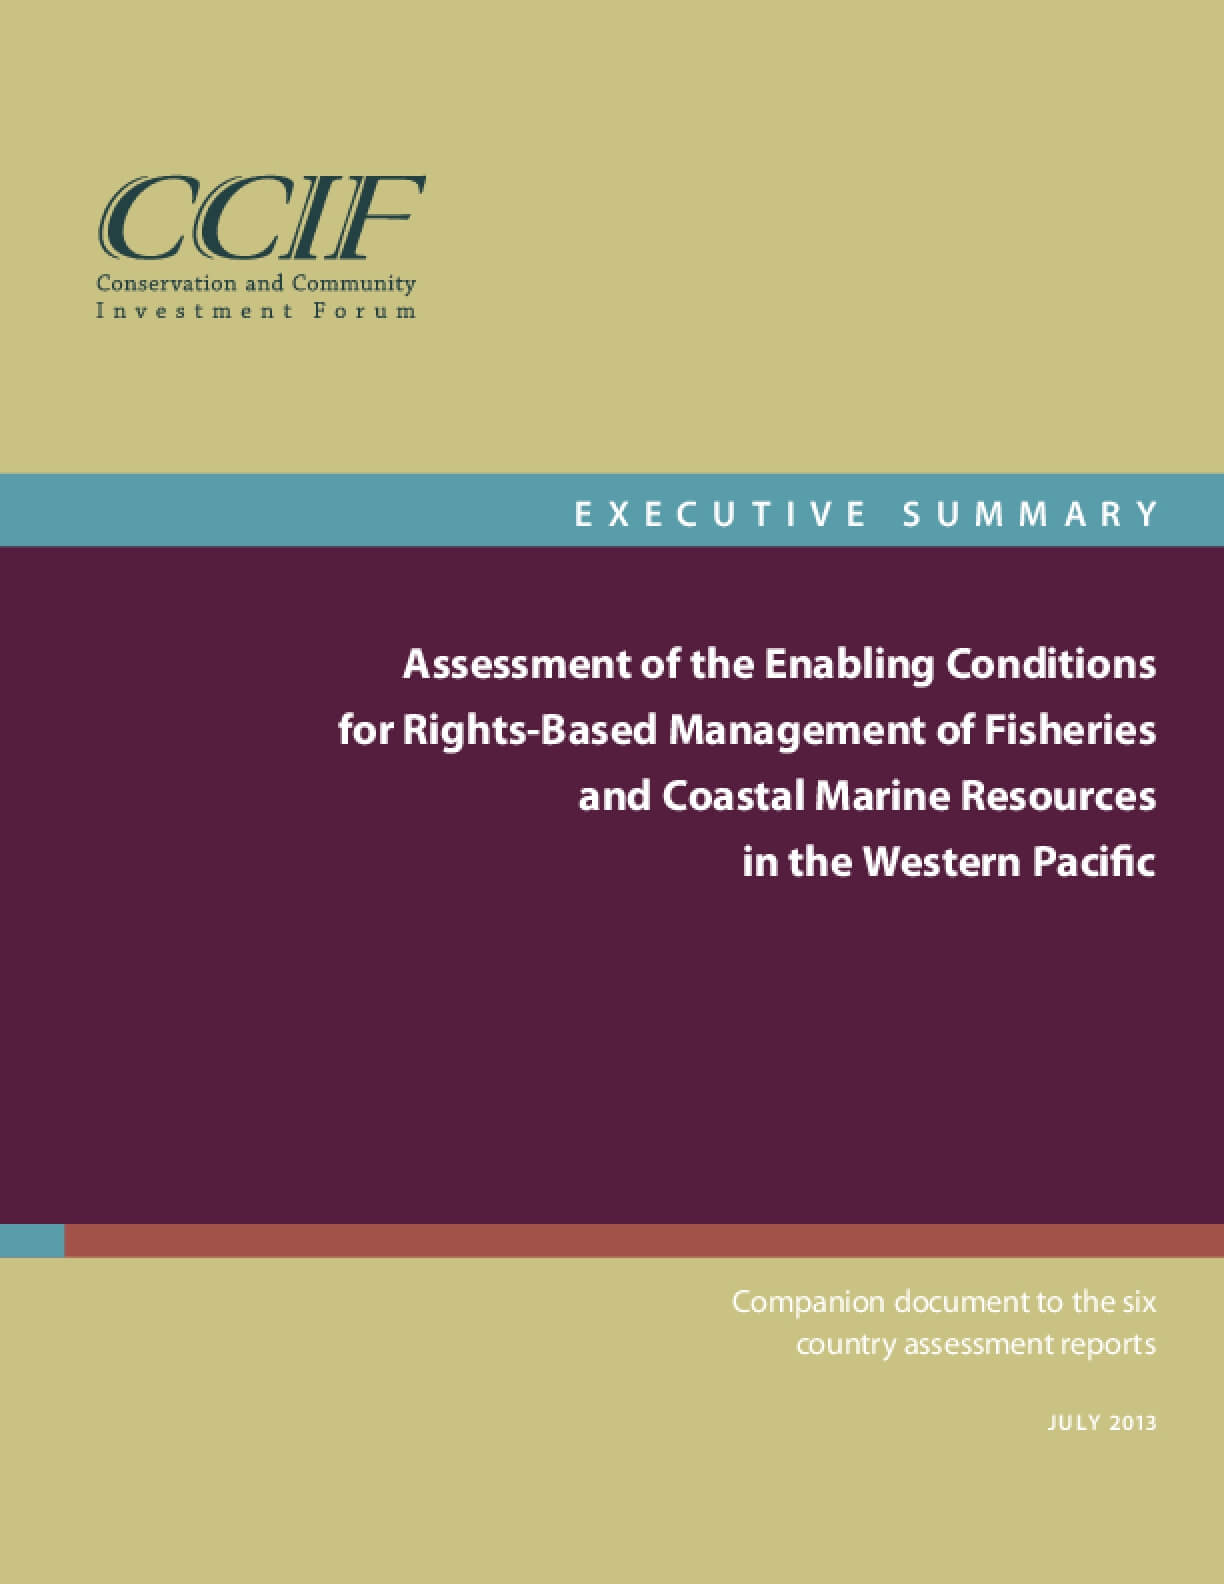 Assessment of Enabling Conditions for Rights-Based Management of Fisheries and Coastal Marine Resources (Executive Summary)